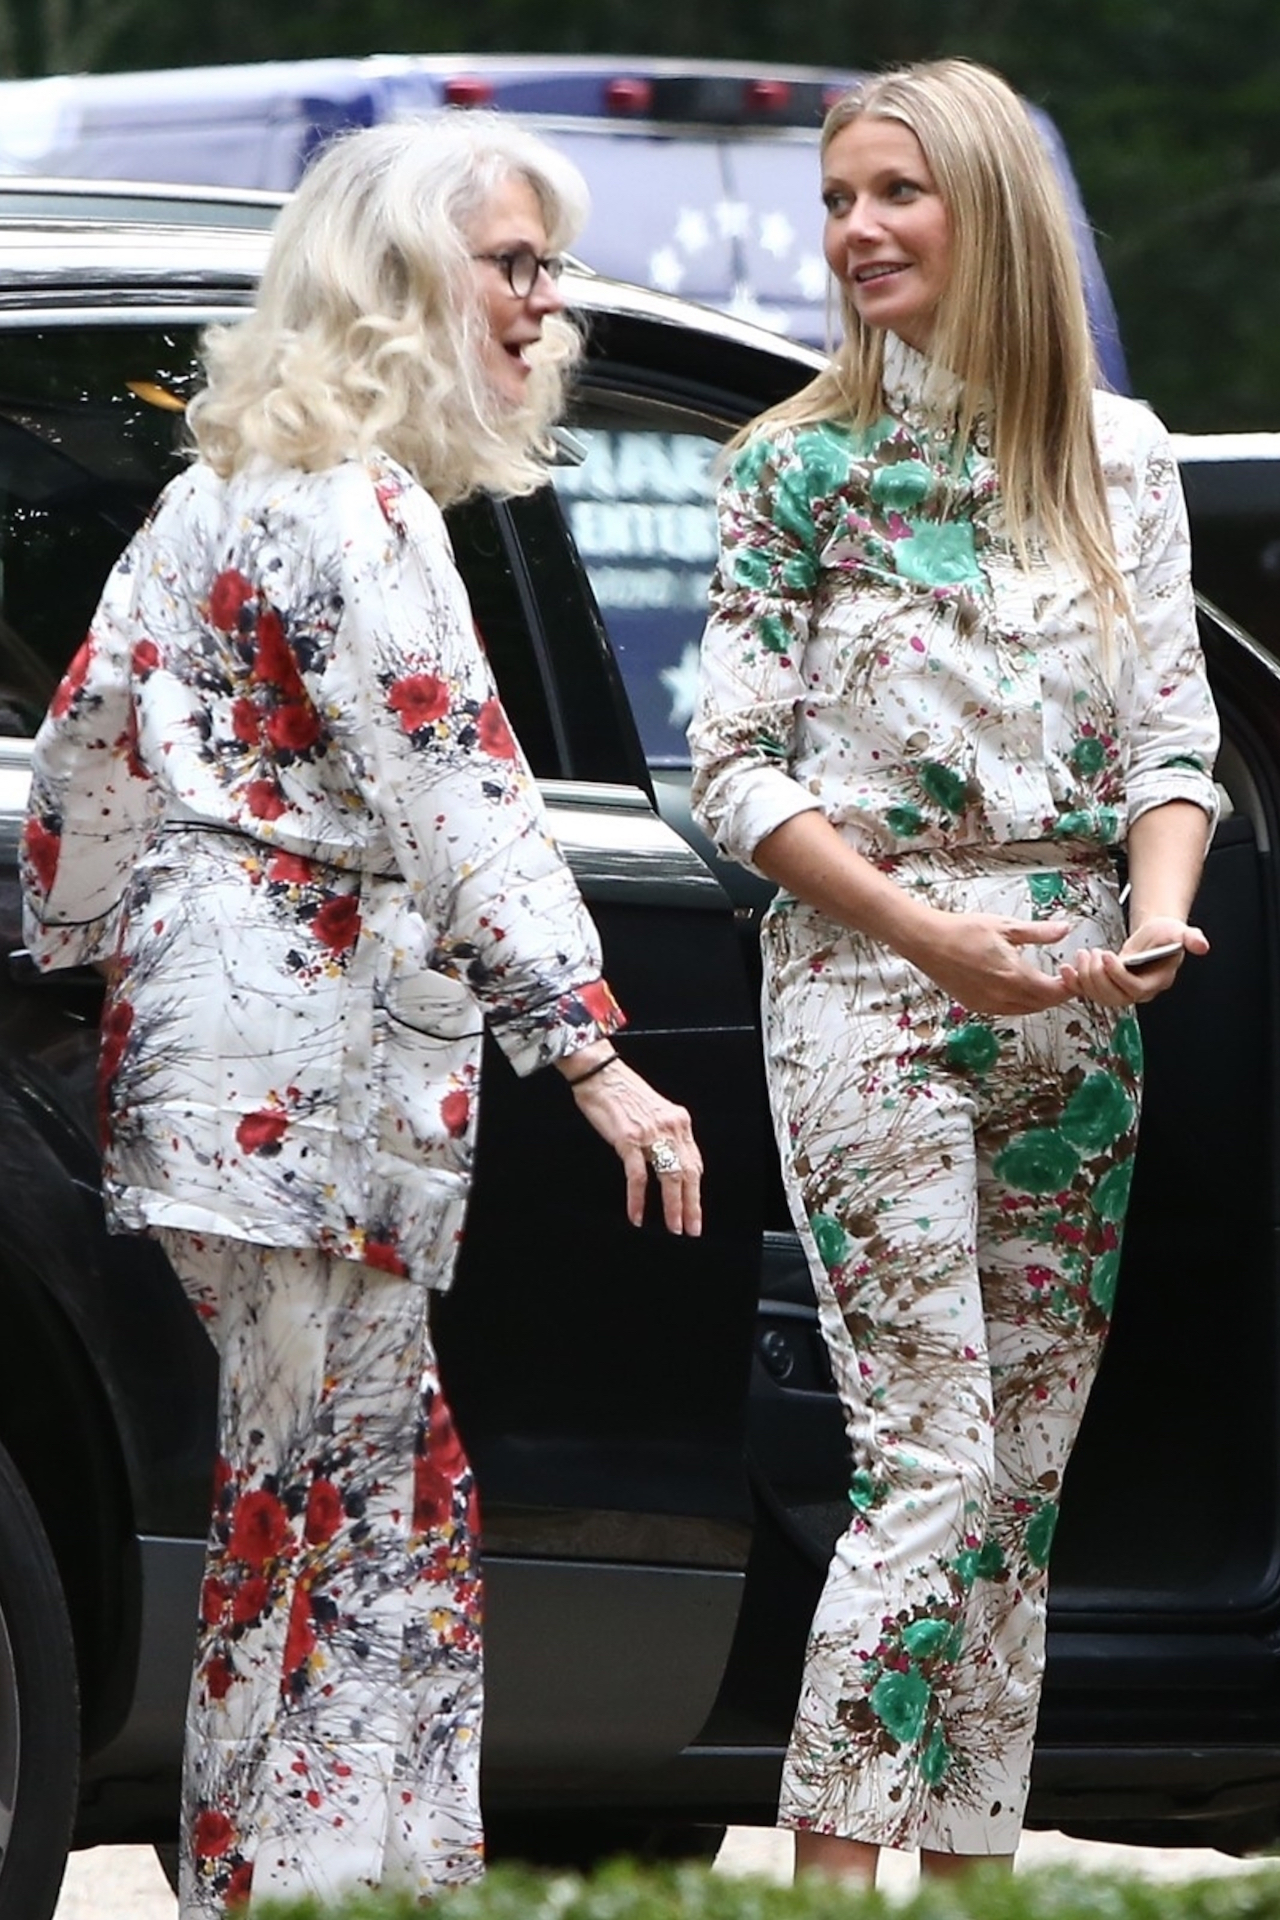 Hamptons, NY  - Gwyneth Paltrow arrives with her mother Blythe Danner, Chris Martin and their kids, at her brand Goop event in the Hamptons.  Pictured: Gwyneth Paltrow, Blythe Danner  BACKGRID USA 20 JULY 2017   BYLINE MUST READ: MiamiPIXX / BACKGRID  USA: +1 310 798 9111 / usasales@backgrid.com  UK: +44 208 344 2007 / uksales@backgrid.com  *UK Clients - Pictures Containing Children Please Pixelate Face Prior To Publication*